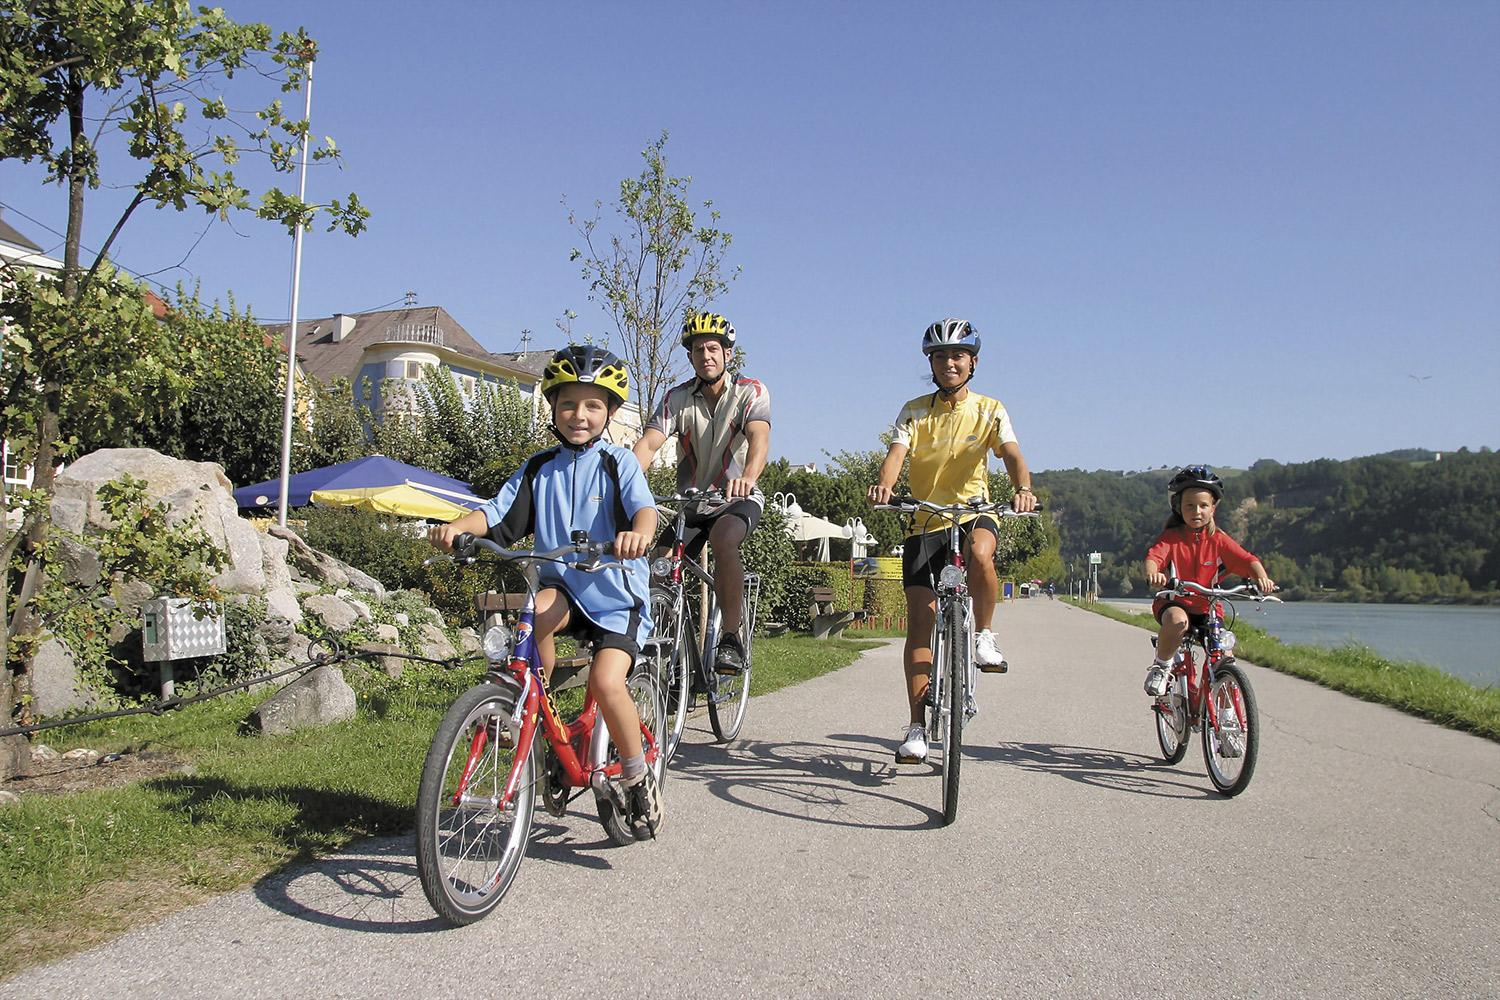 Fun for all the family with easy and flat cycling along the Blue Danube